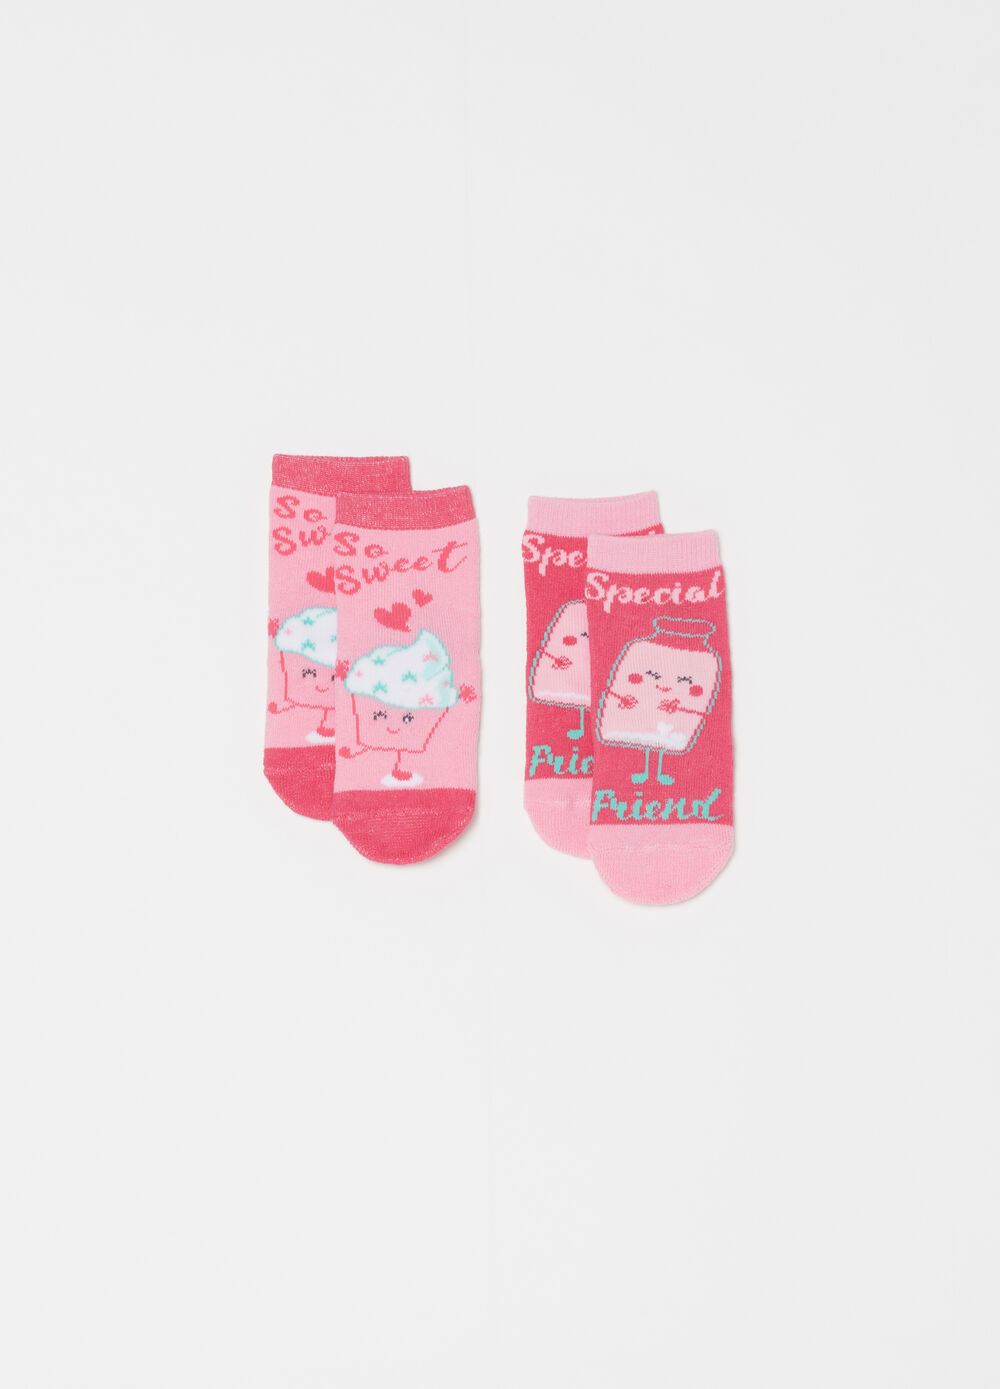 Two-pair pack socks with cake design embroidery